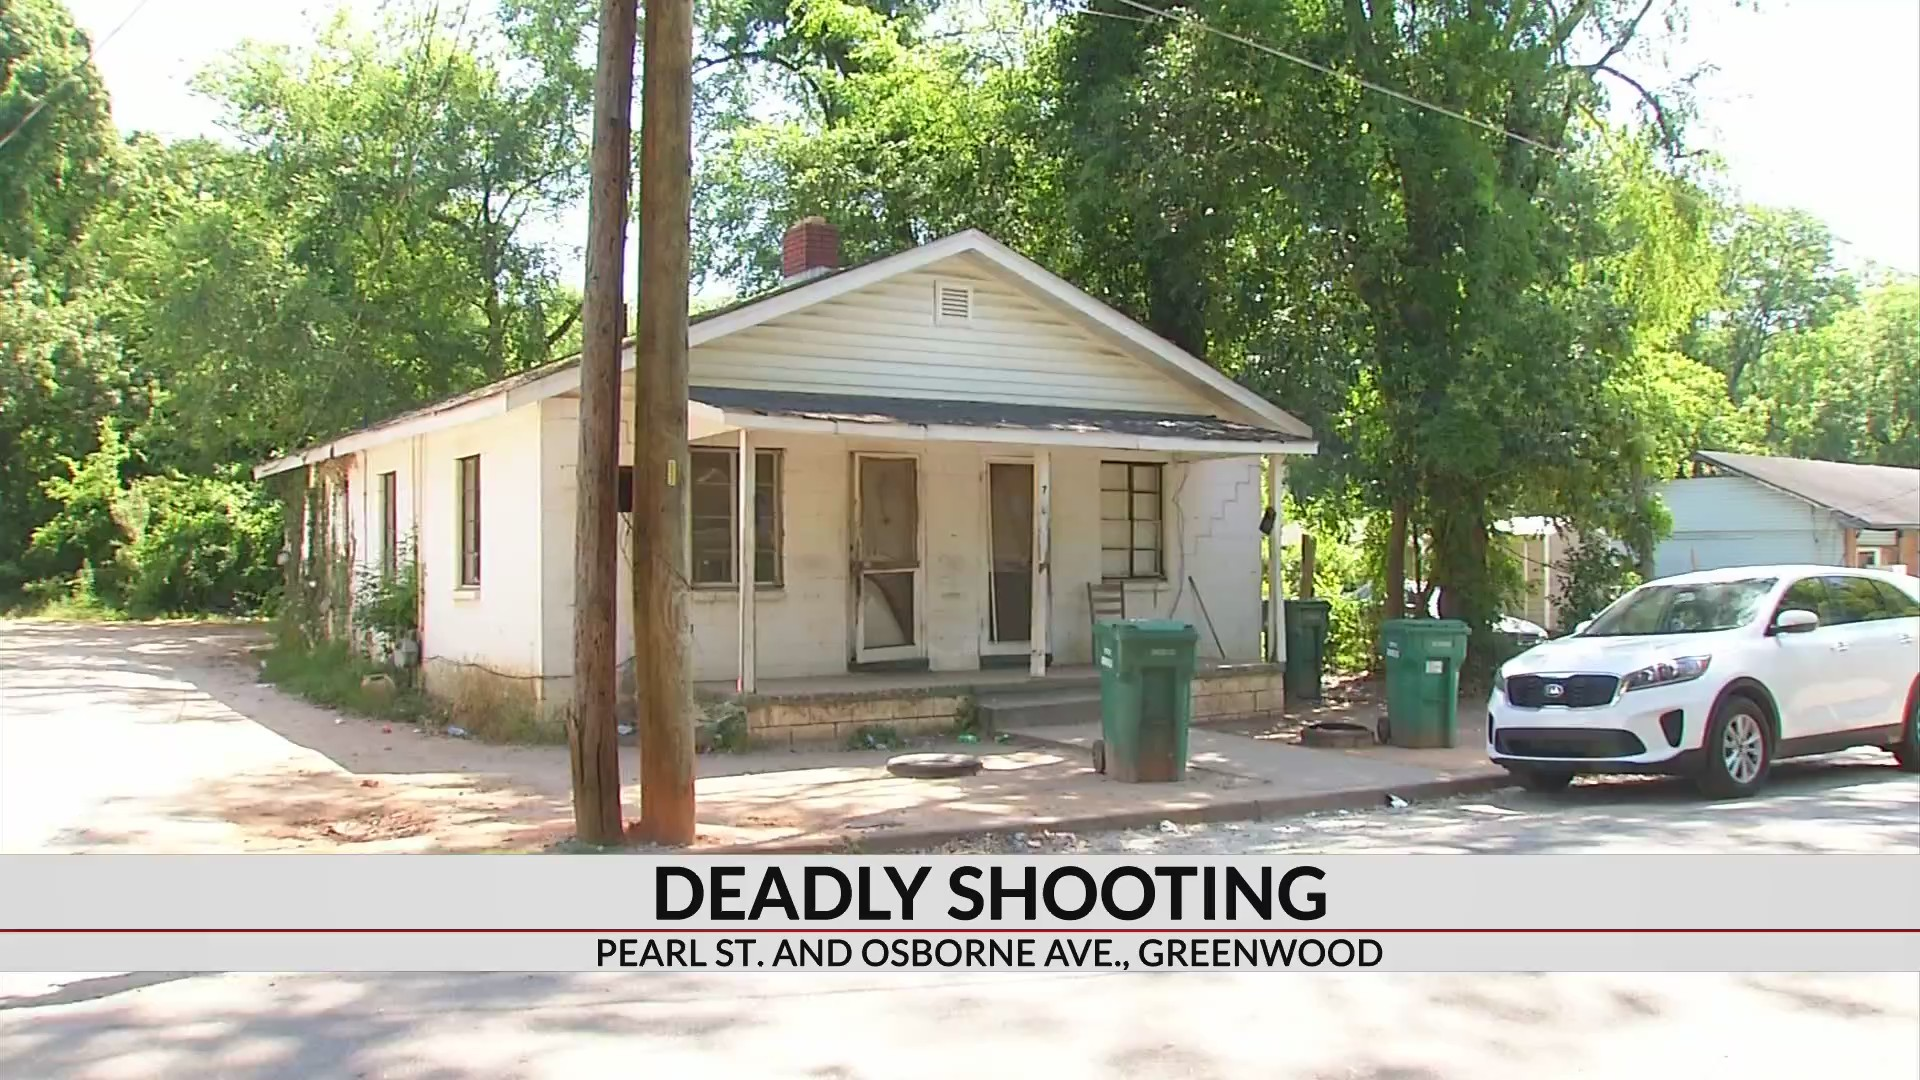 Greenwood man dead after early morning shooting